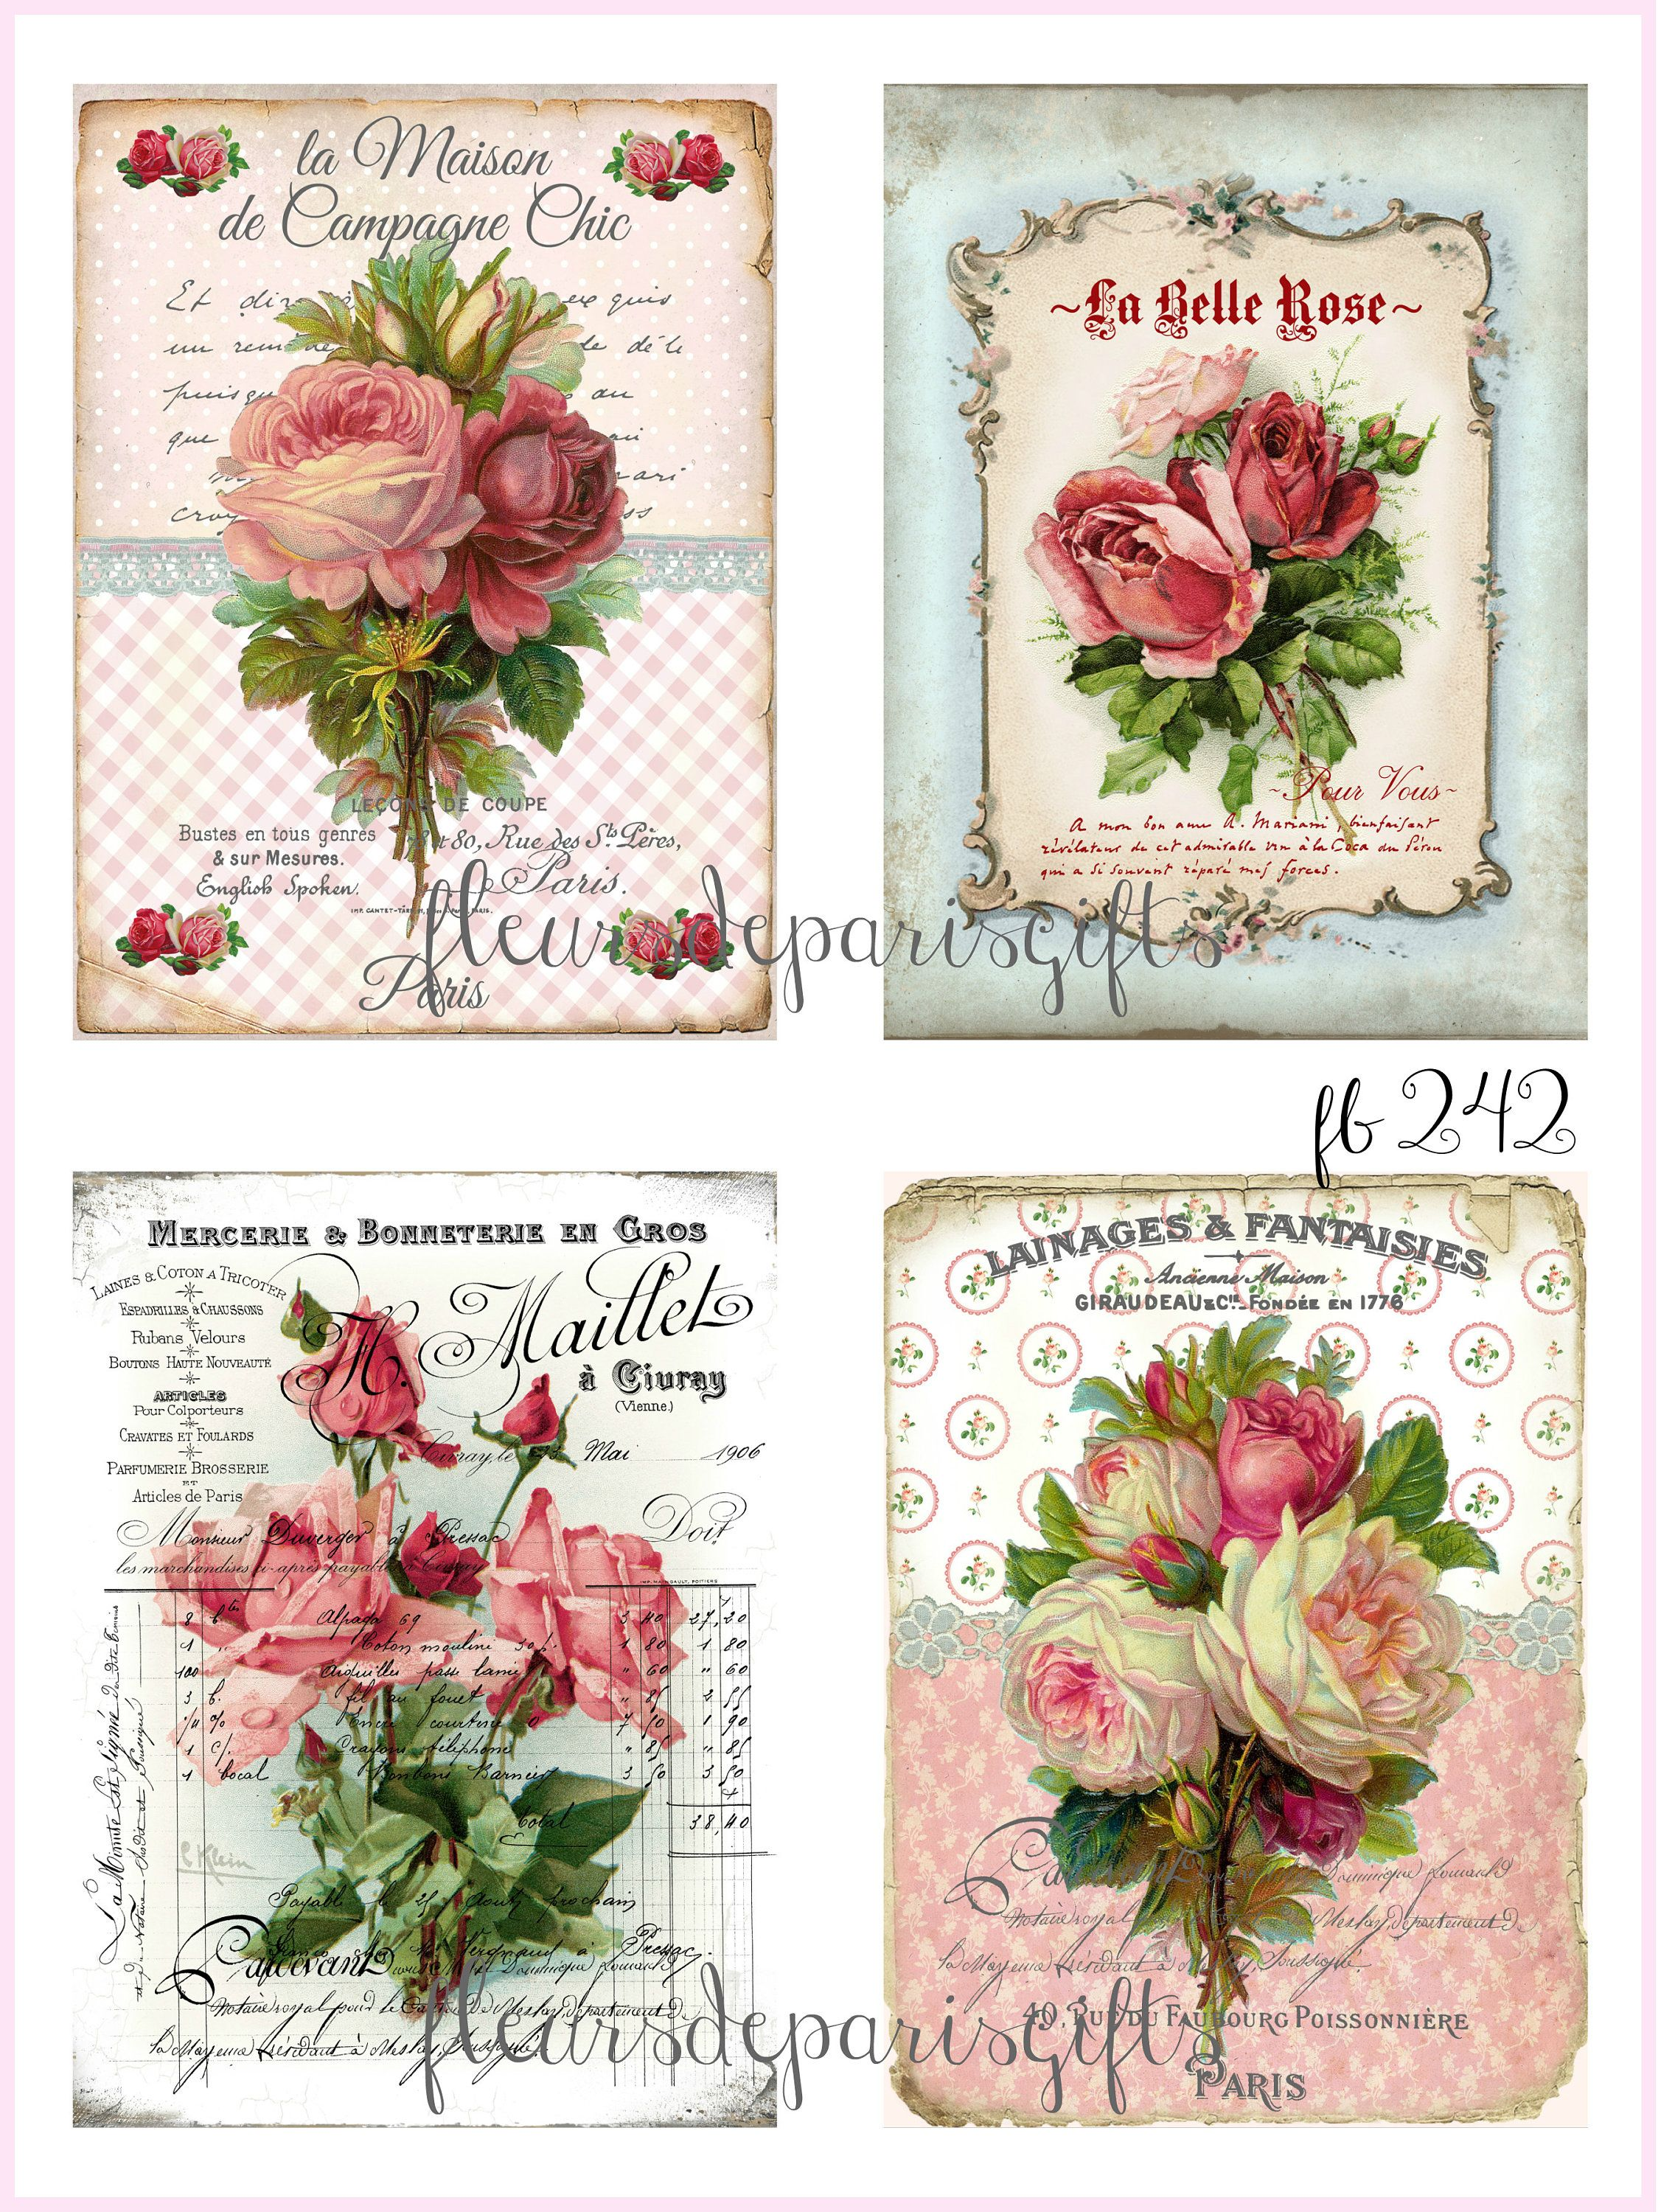 Photo of Shabby Chic Vintage French Paris Roses 4 Prints on Fabric great for Quilting Sewing Crafting projects FB 242